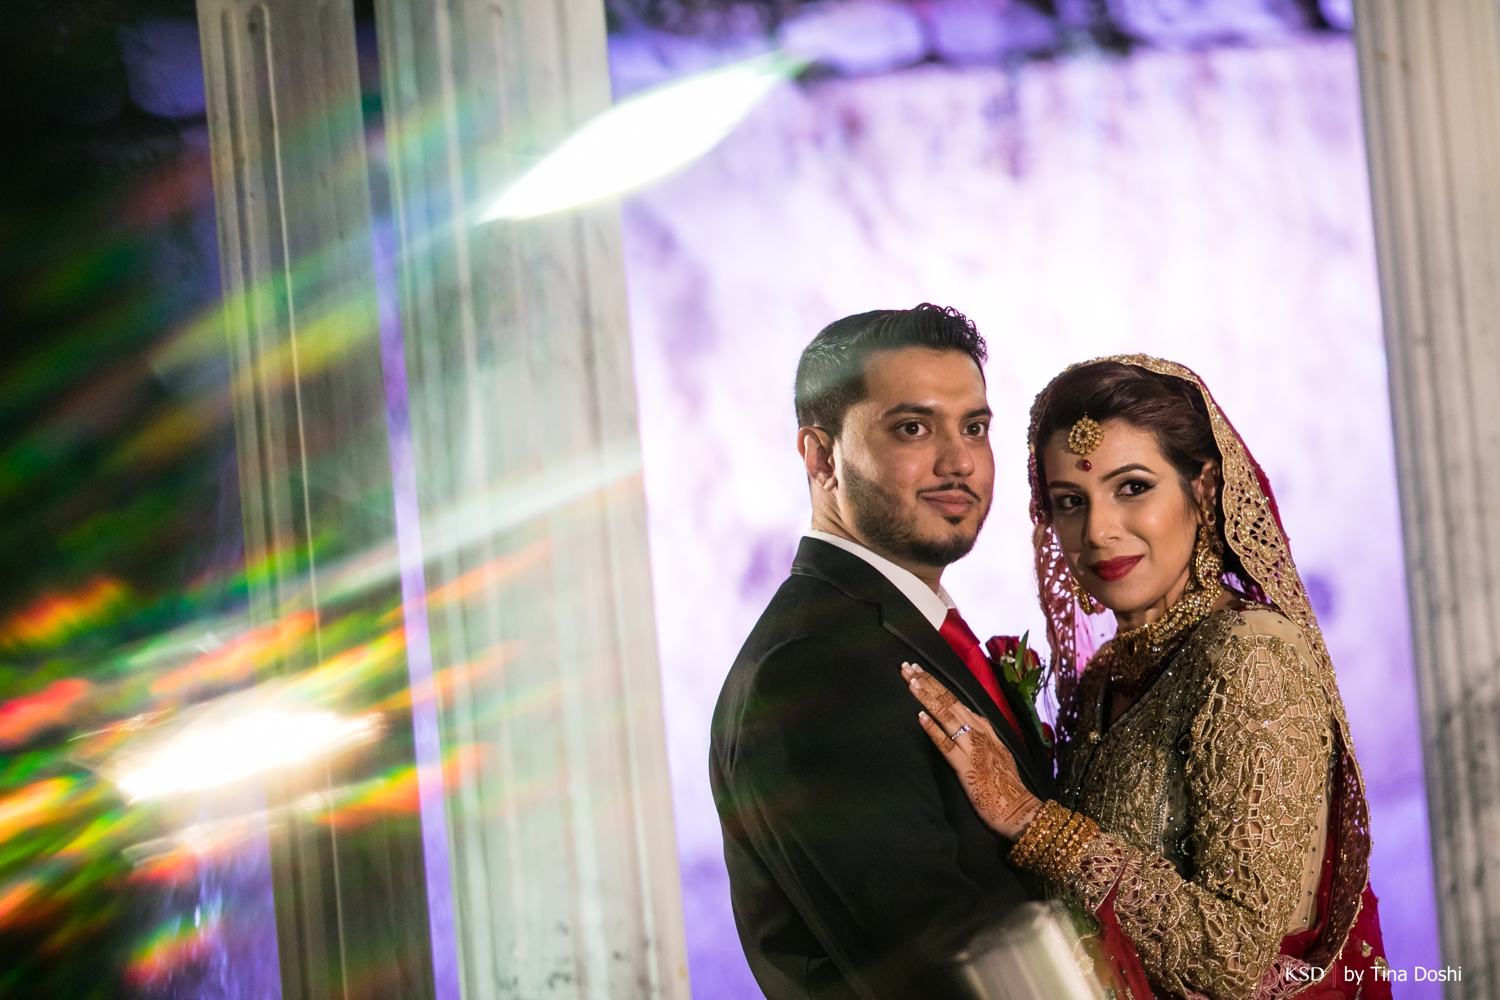 nj_south_asian_wedding_0090